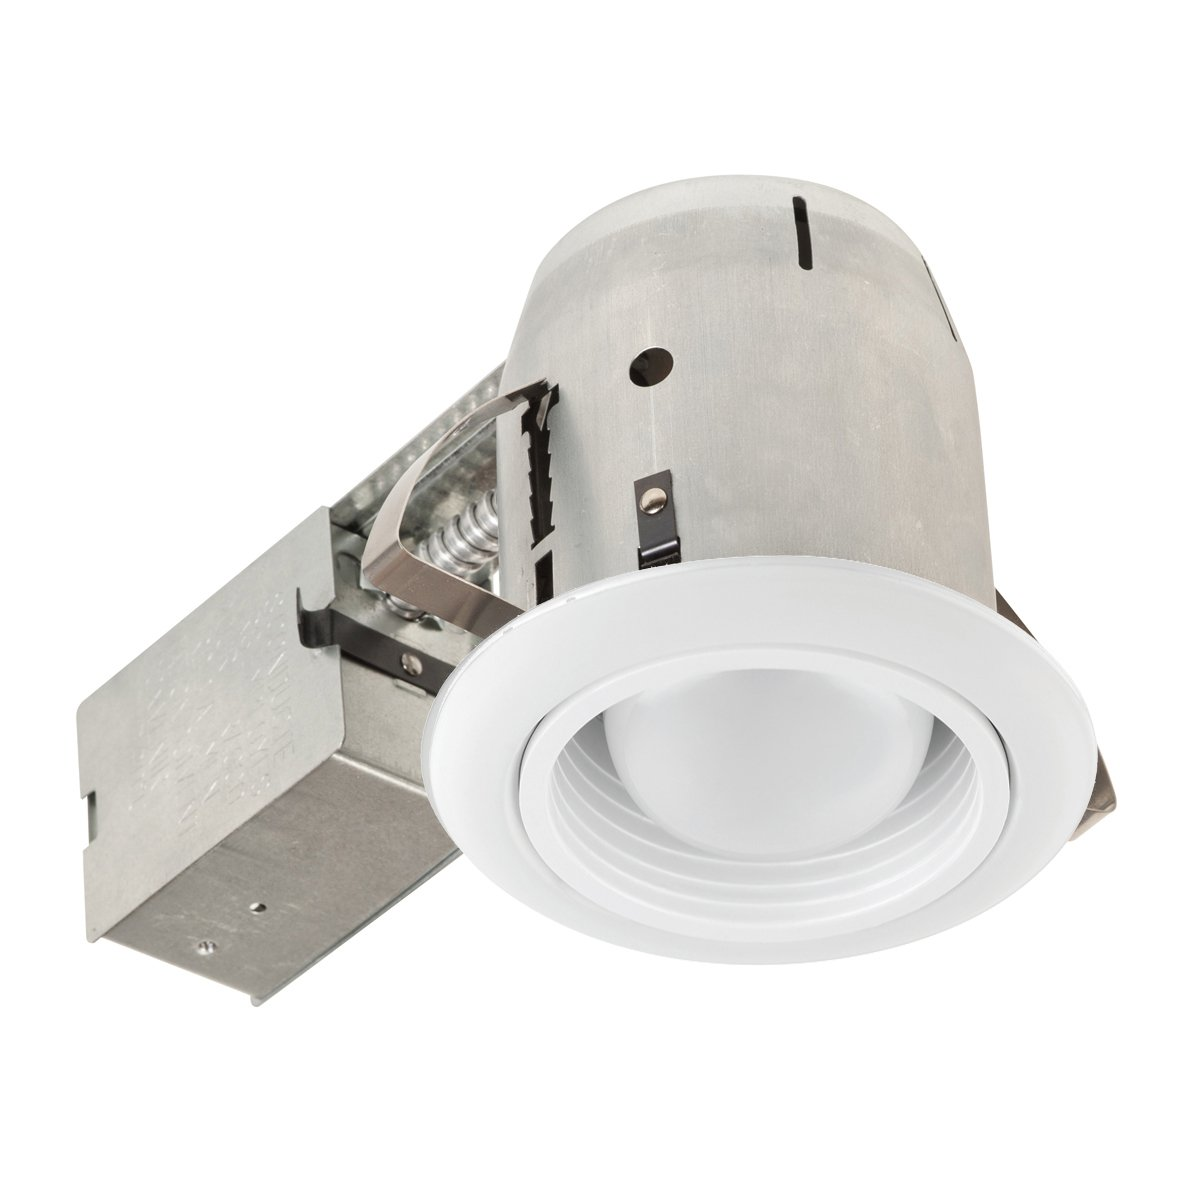 Globe Electric 9241201 4 inch Recessed Lighting Kit, Outdoor, White Finish with White Baffle, Flood Light